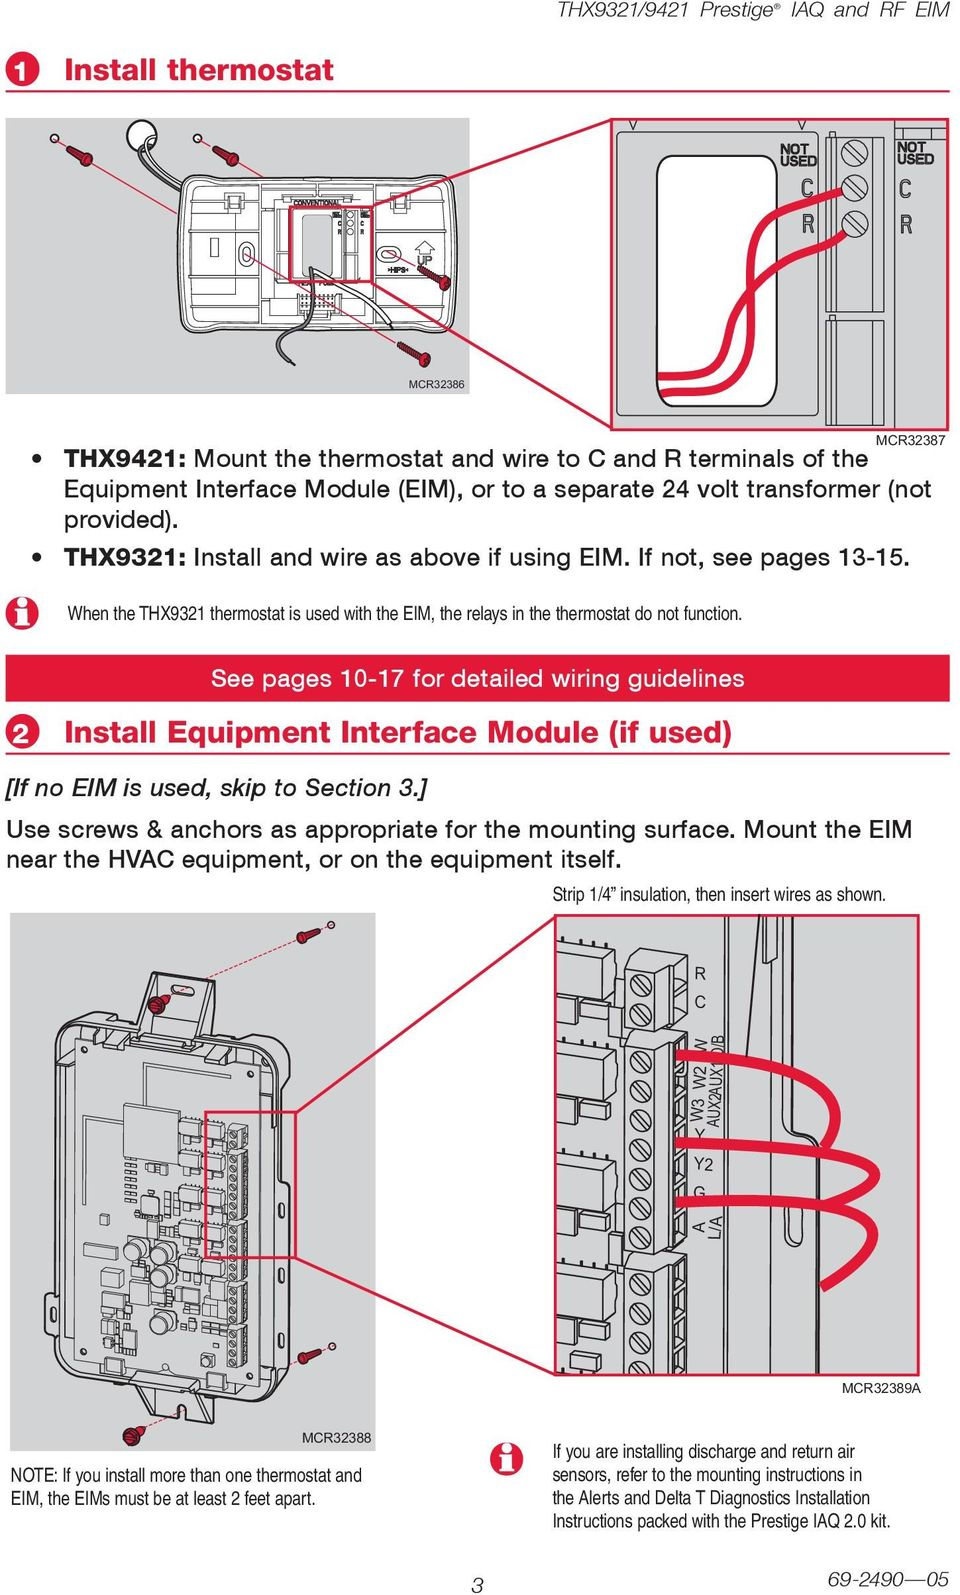 medium resolution of m87 see pages 0 7 for detailed wiring guidelines install equipment interface module if